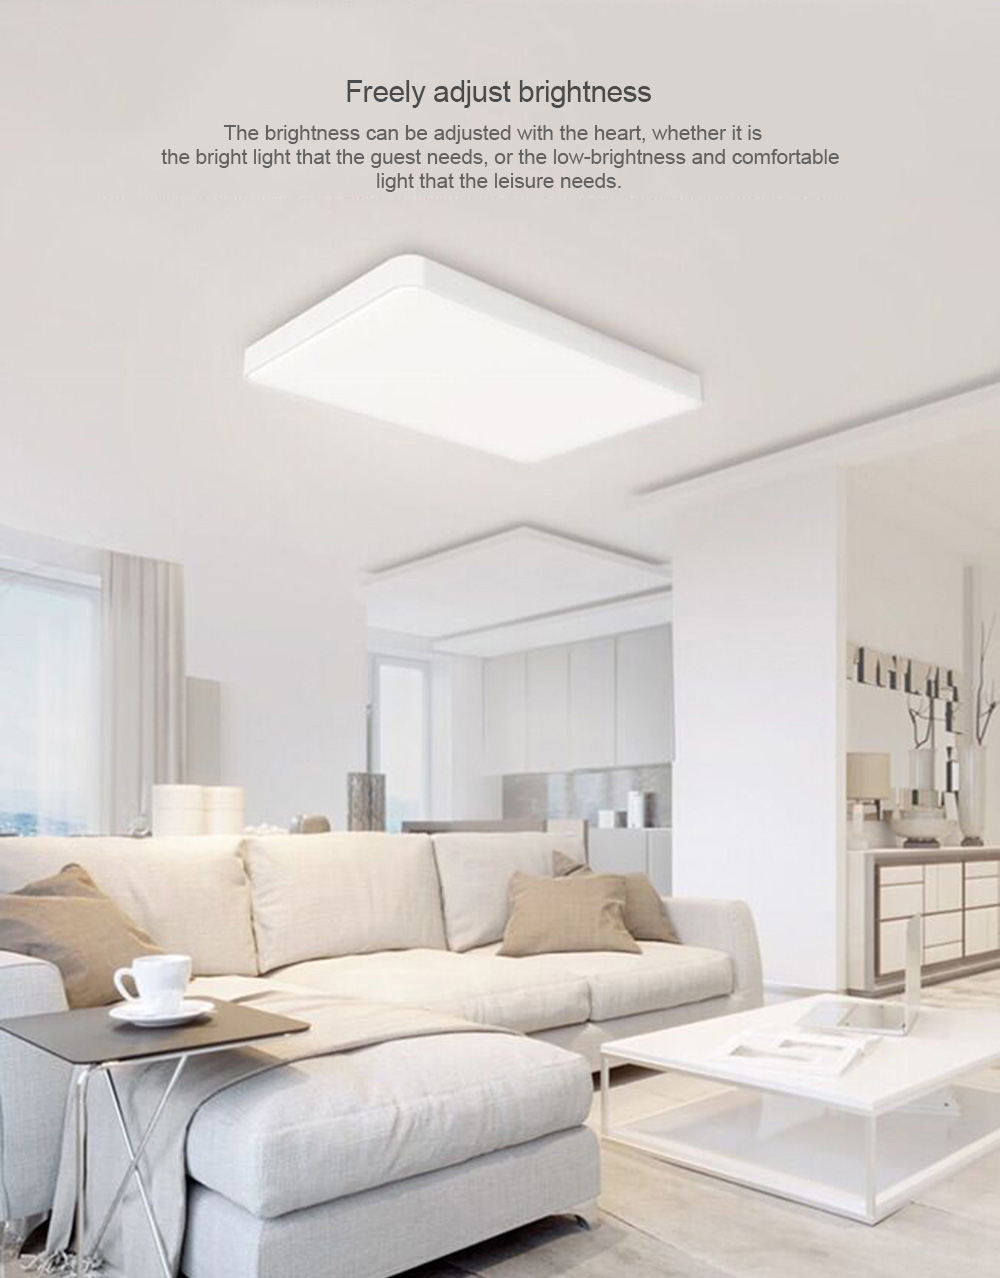 Yeelight Simple LED Ceiling Light Pro for Living Room 220V 90W from Xiaomi Youpin- White gray shell